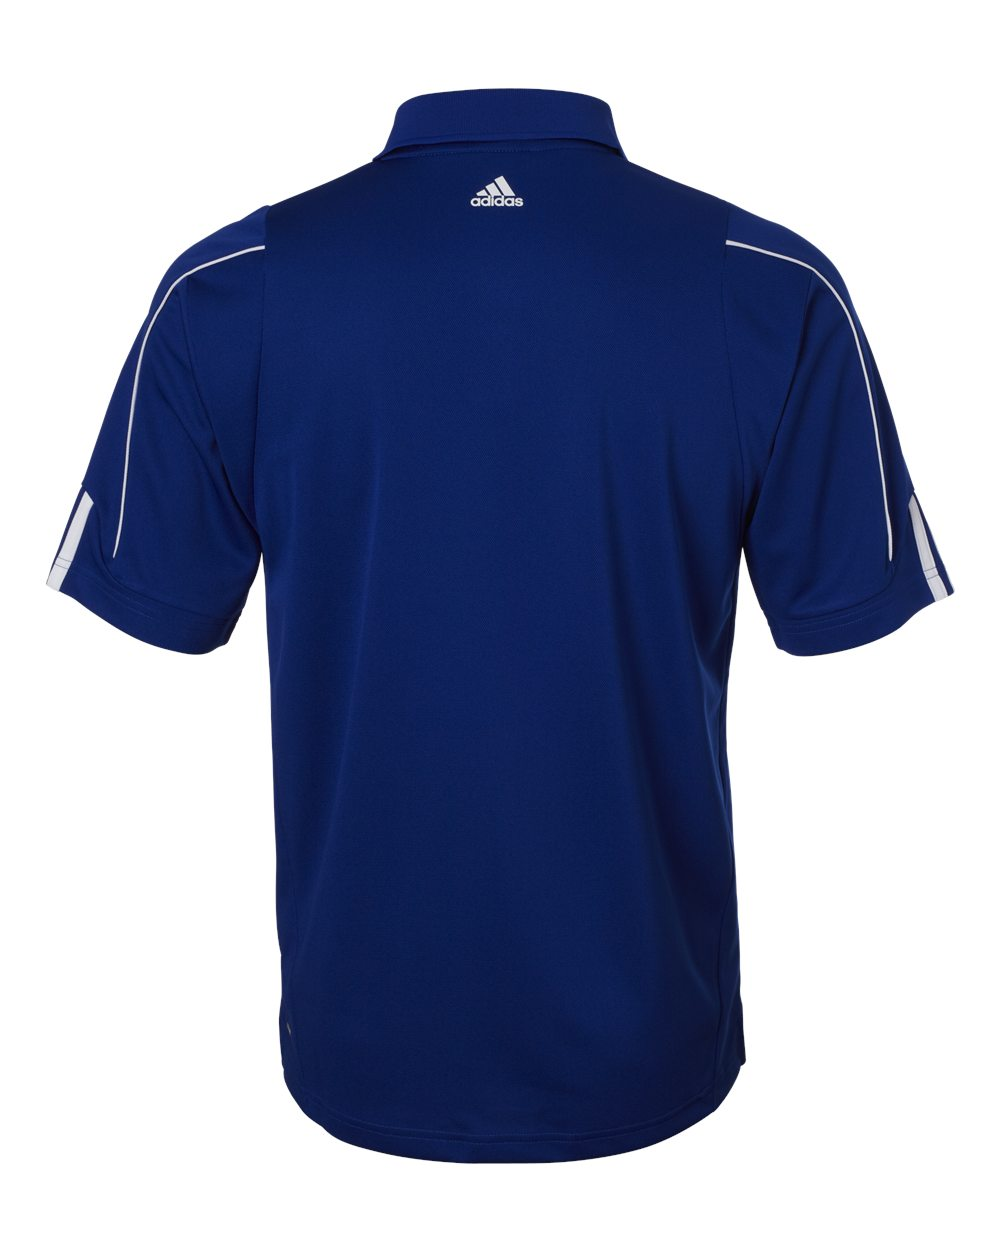 Adidas-Mens-Climalite-3-Stripes-Cuff-Sport-Shirt-A76-up-to-4XL miniature 13